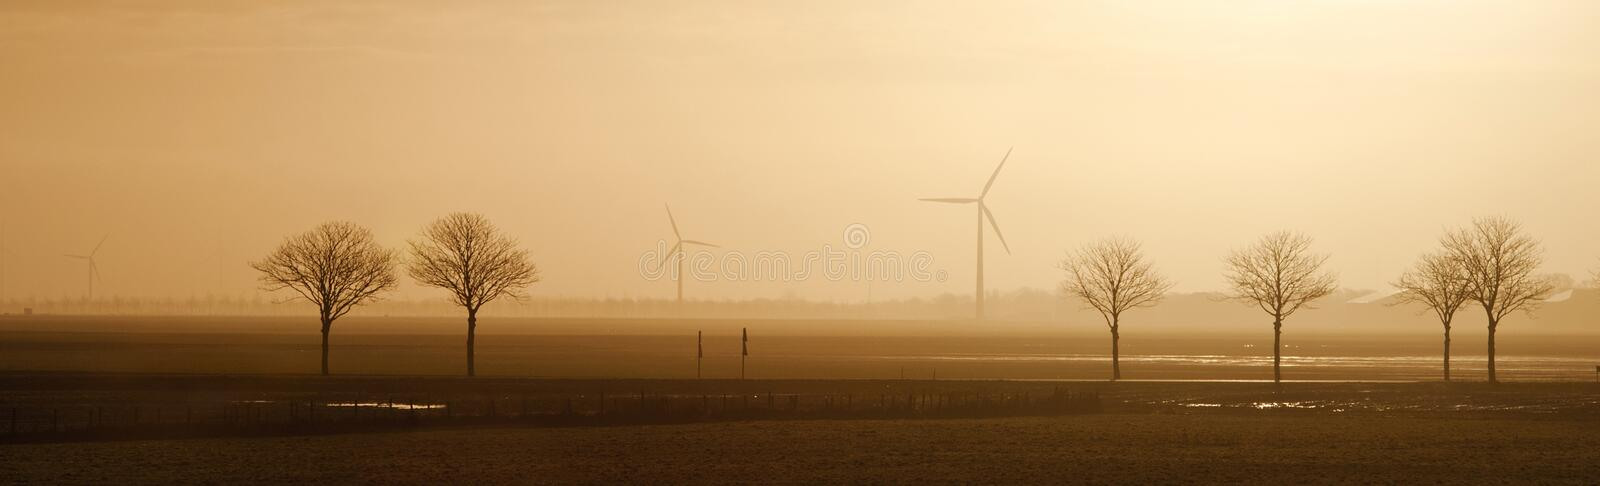 Field with trees and windmills on the horizon in the morning. Typical dutch landscape. North Holland, Hollands Kroon, Netherlands. Panoramic view royalty free stock photos